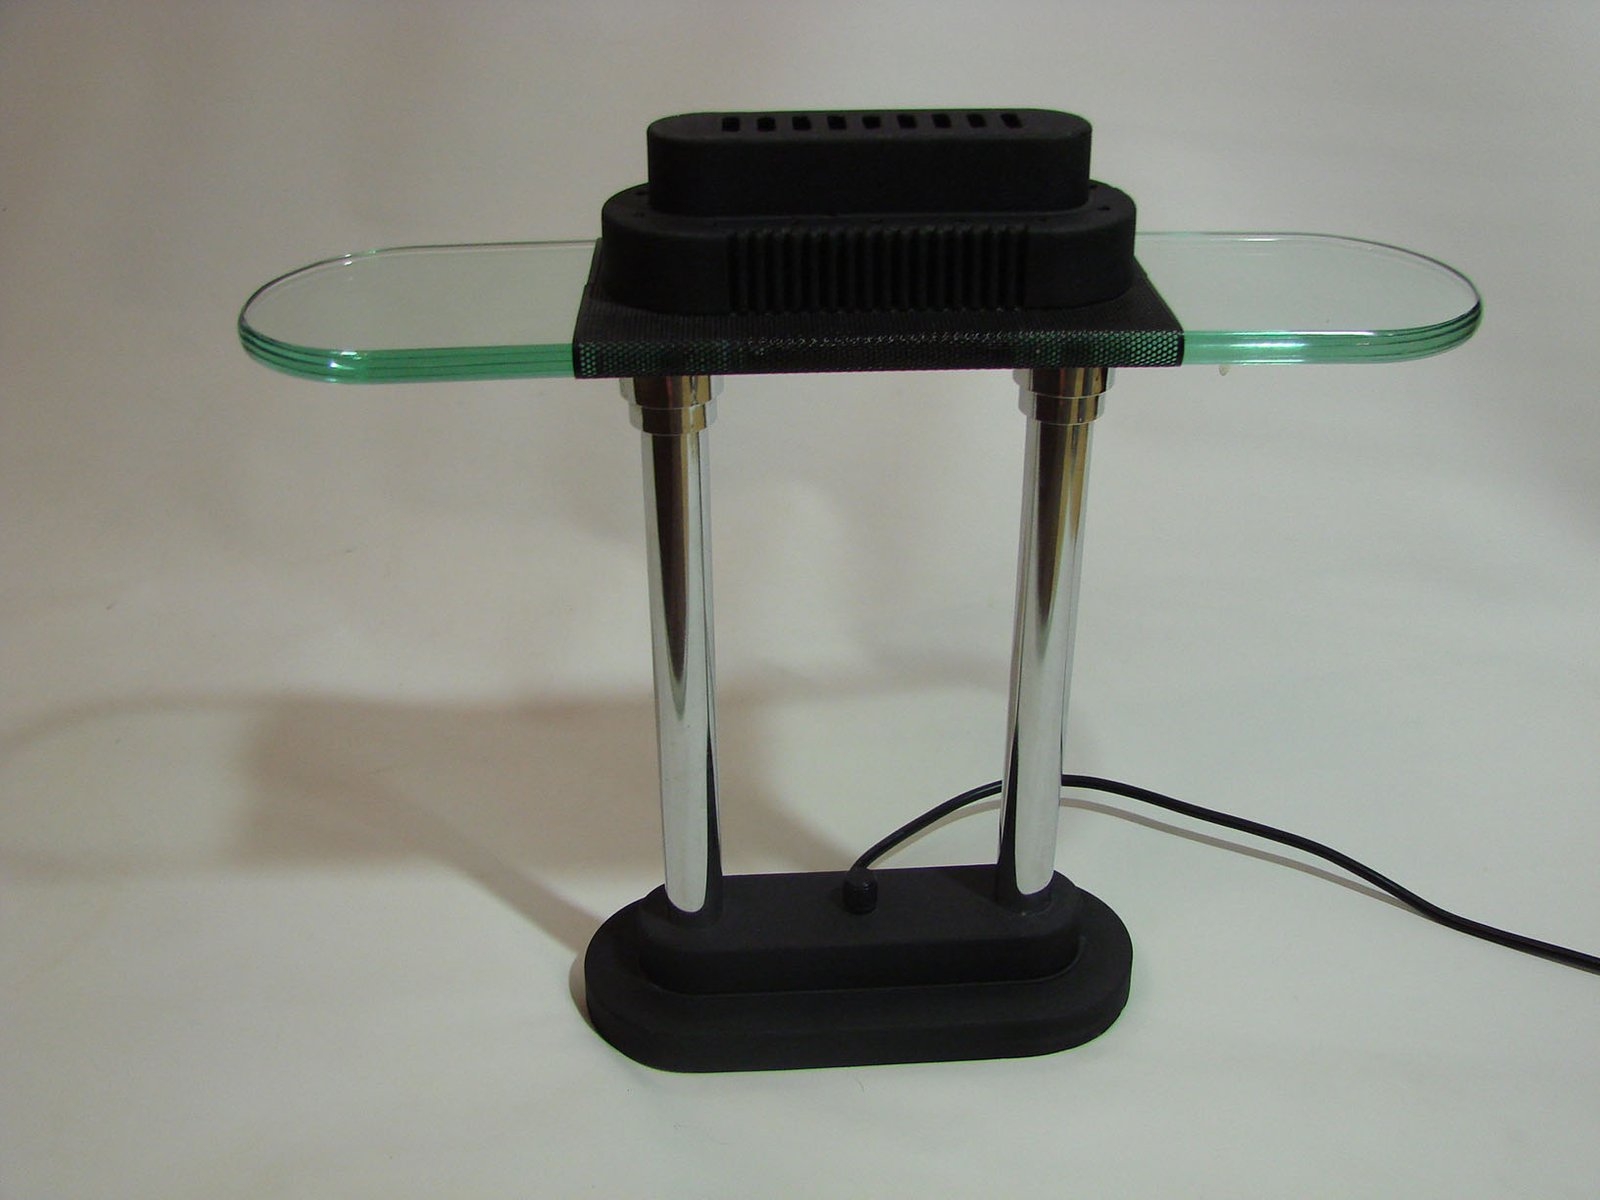 vintage lamp by robert sonneman for george kovacs for sale at pamono - price per piece